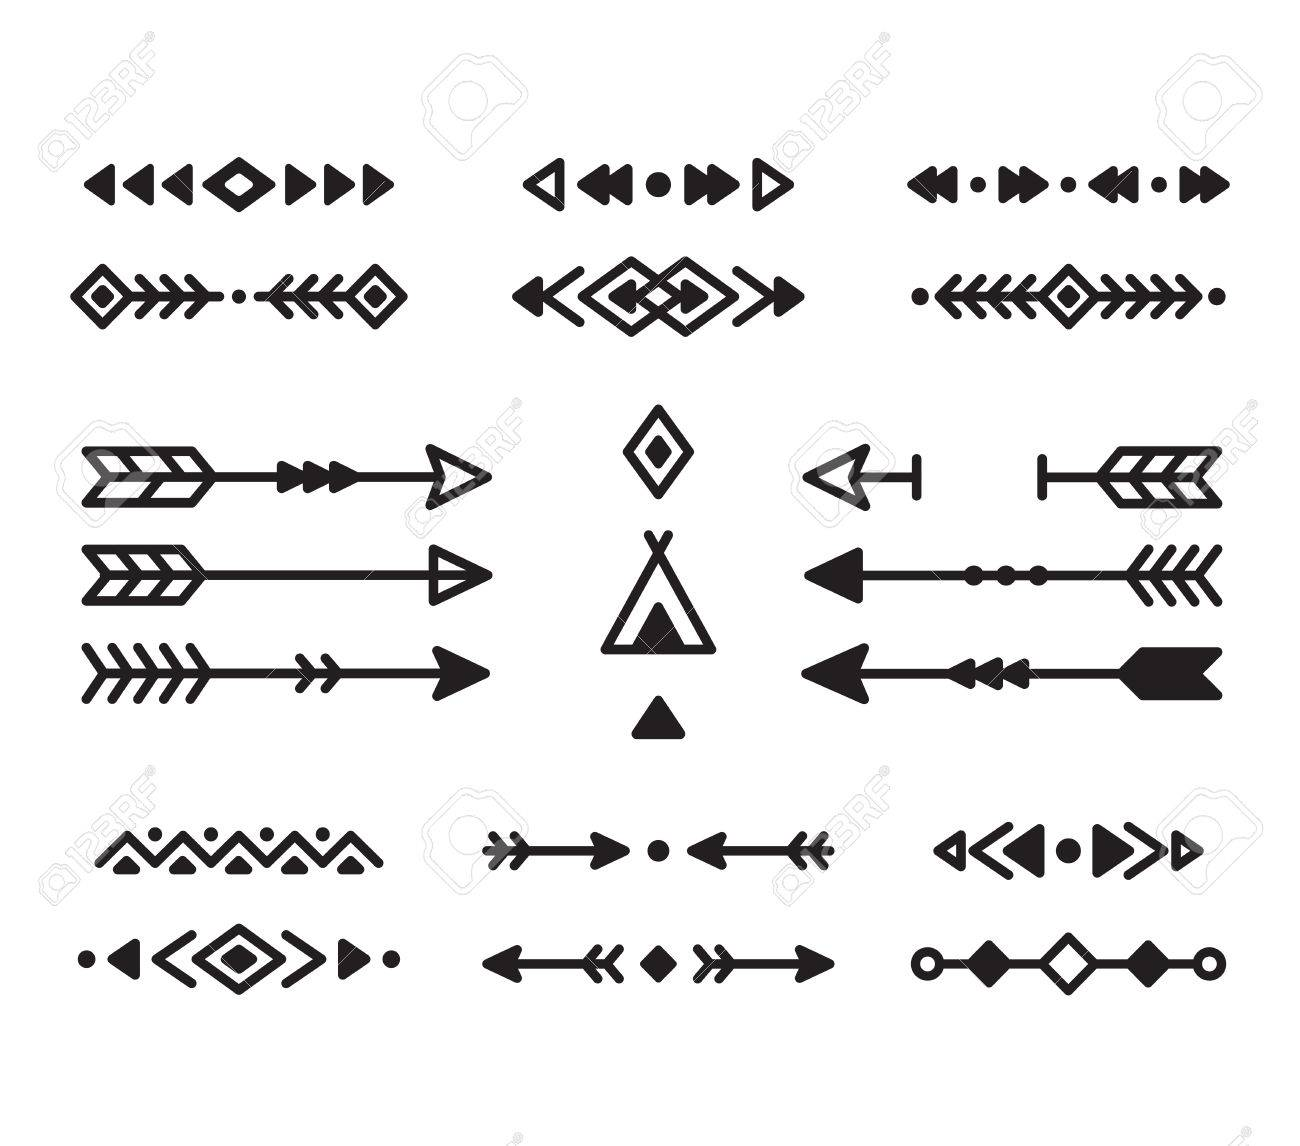 Native american ornaments - Native American Indian Design Elements Set Borders Arrows Ornaments And Other Symbols